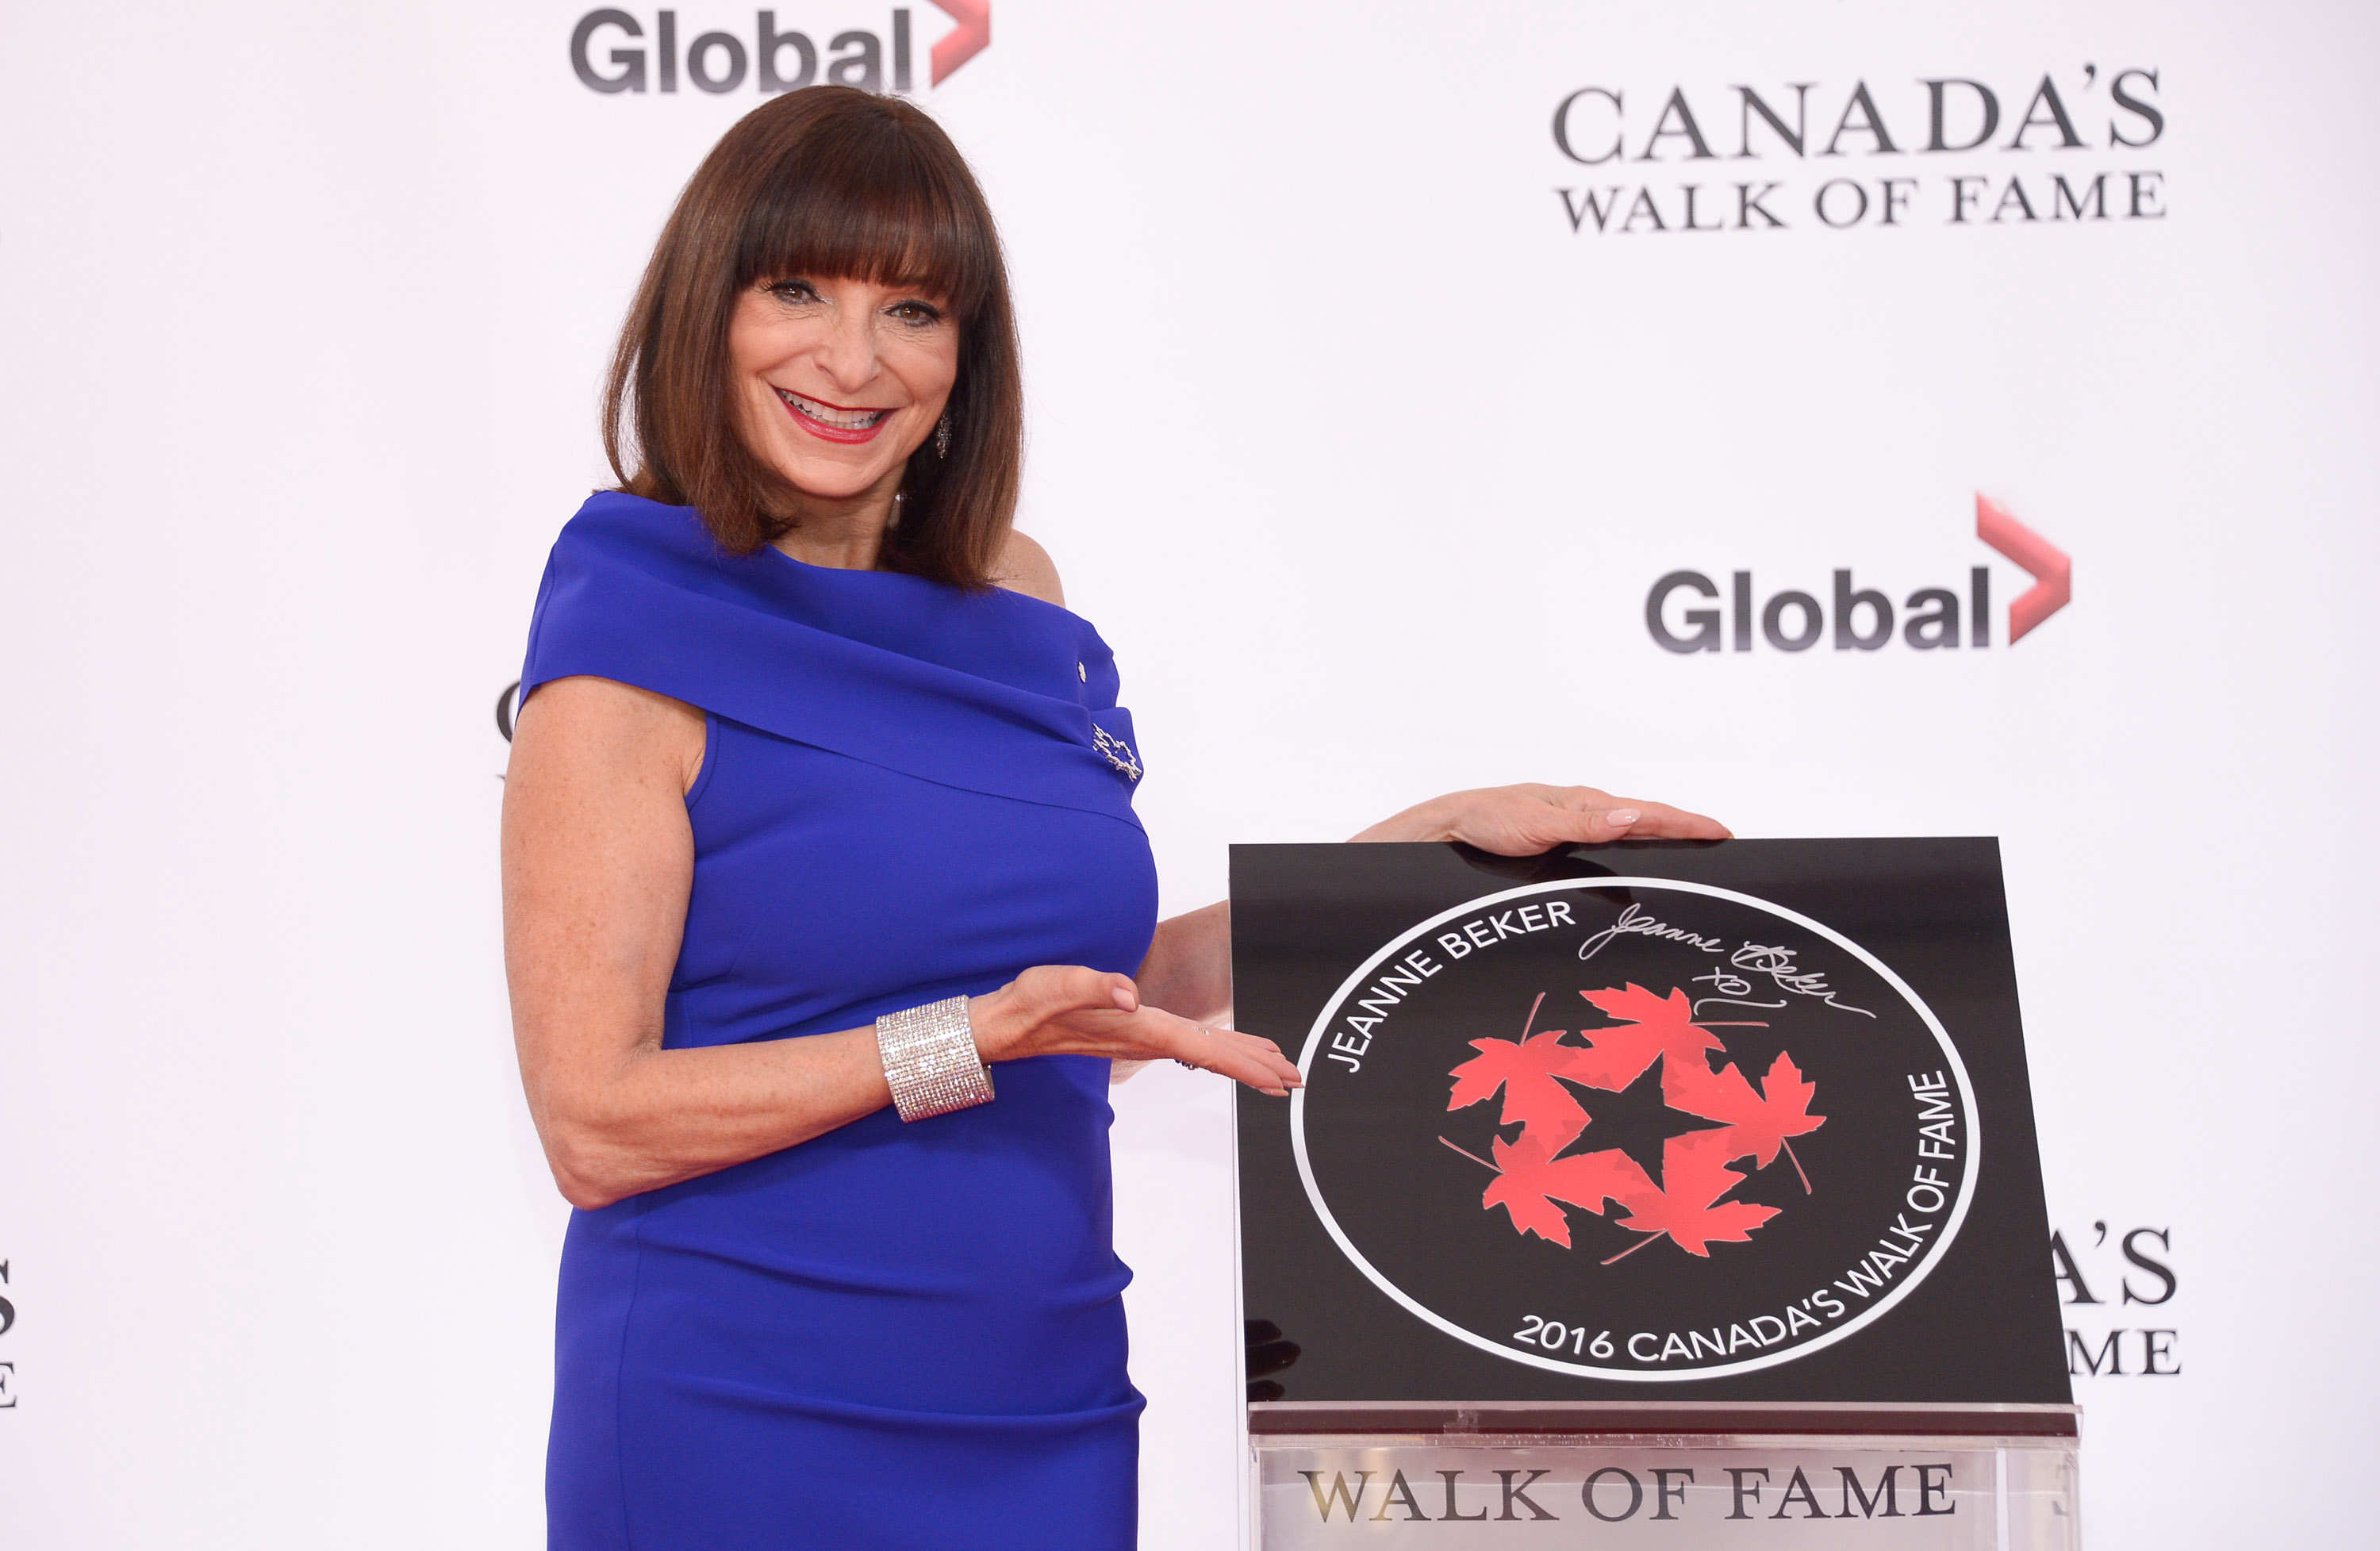 TORONTO, ON - OCTOBER 06:  Fashion Entrepreneur, TV personality and journalist Jeanne Beker attends the 2016 Canada's Walk Of Fame Awards at Allstream Centre on October 6, 2016 in Toronto, Canada.  (Photo by George Pimentel/WireImage)